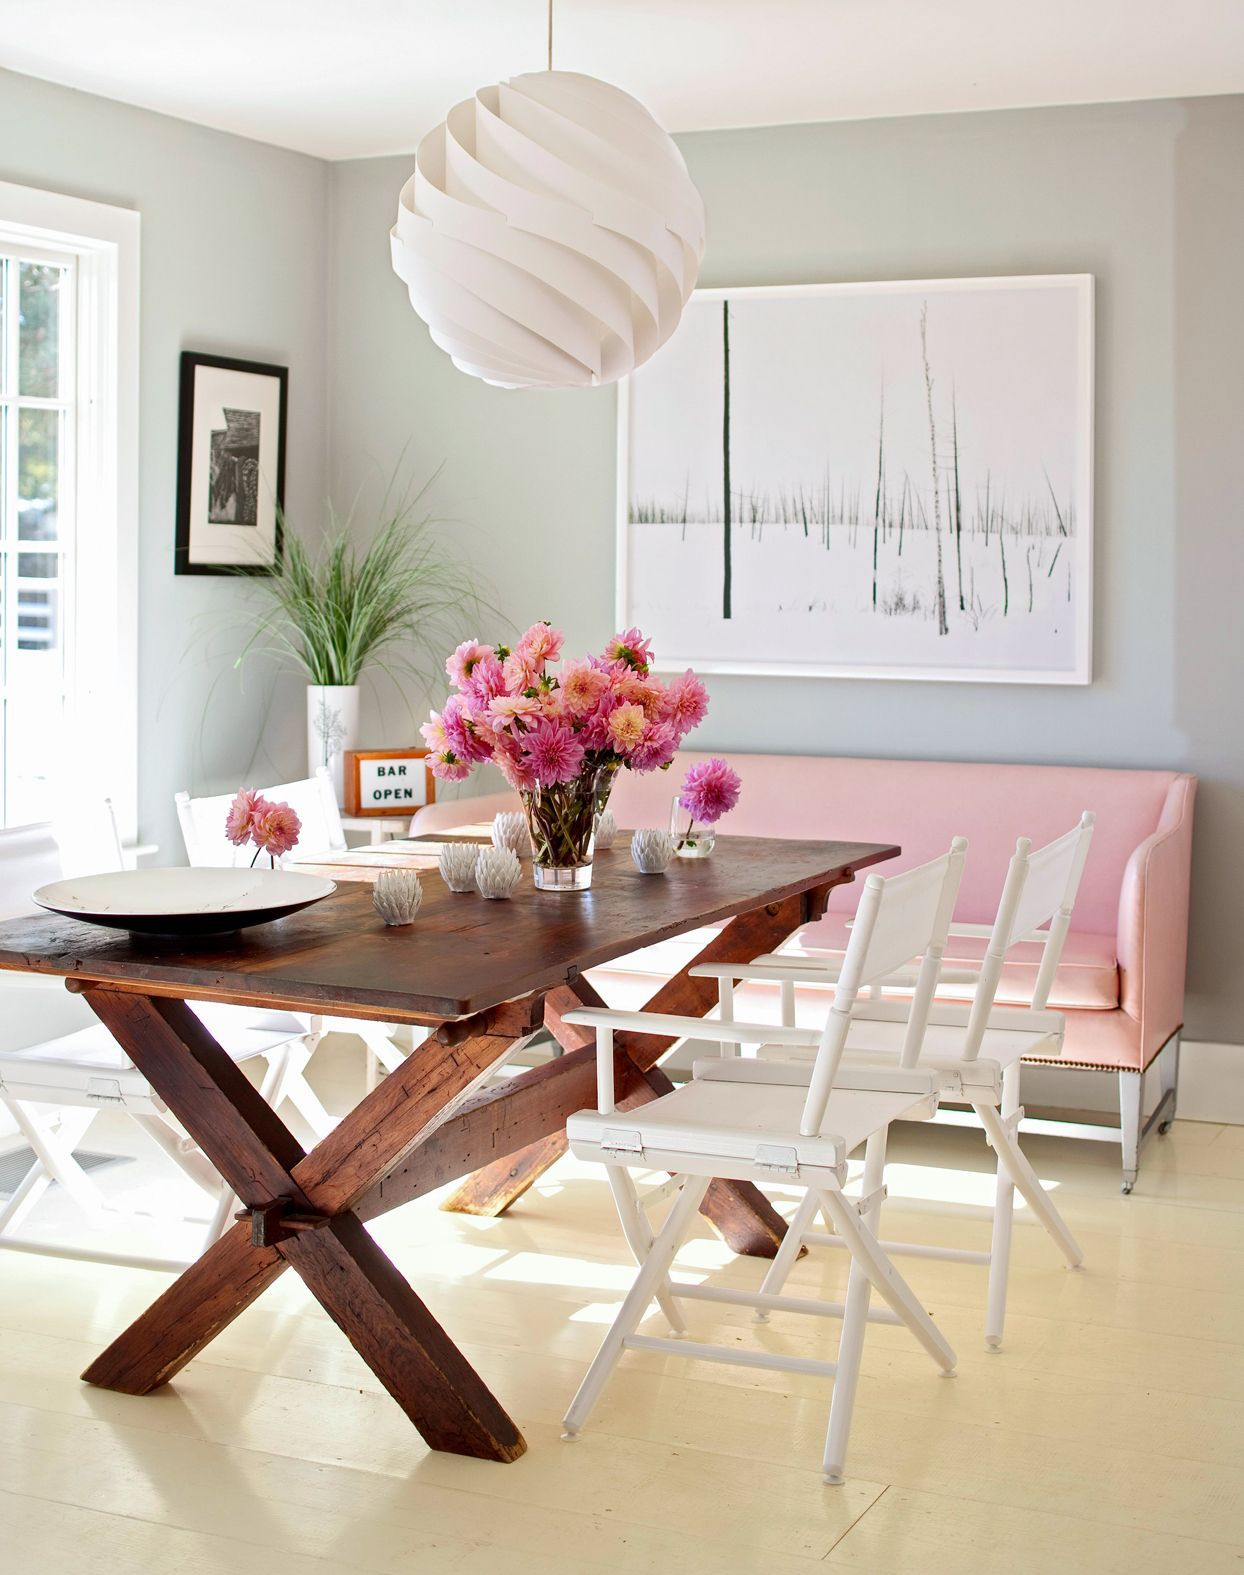 How To Choose Colors That Beautifully Pair With Wood Furniture And Floors Rustic Dining Room Furniture Arrangement Decor